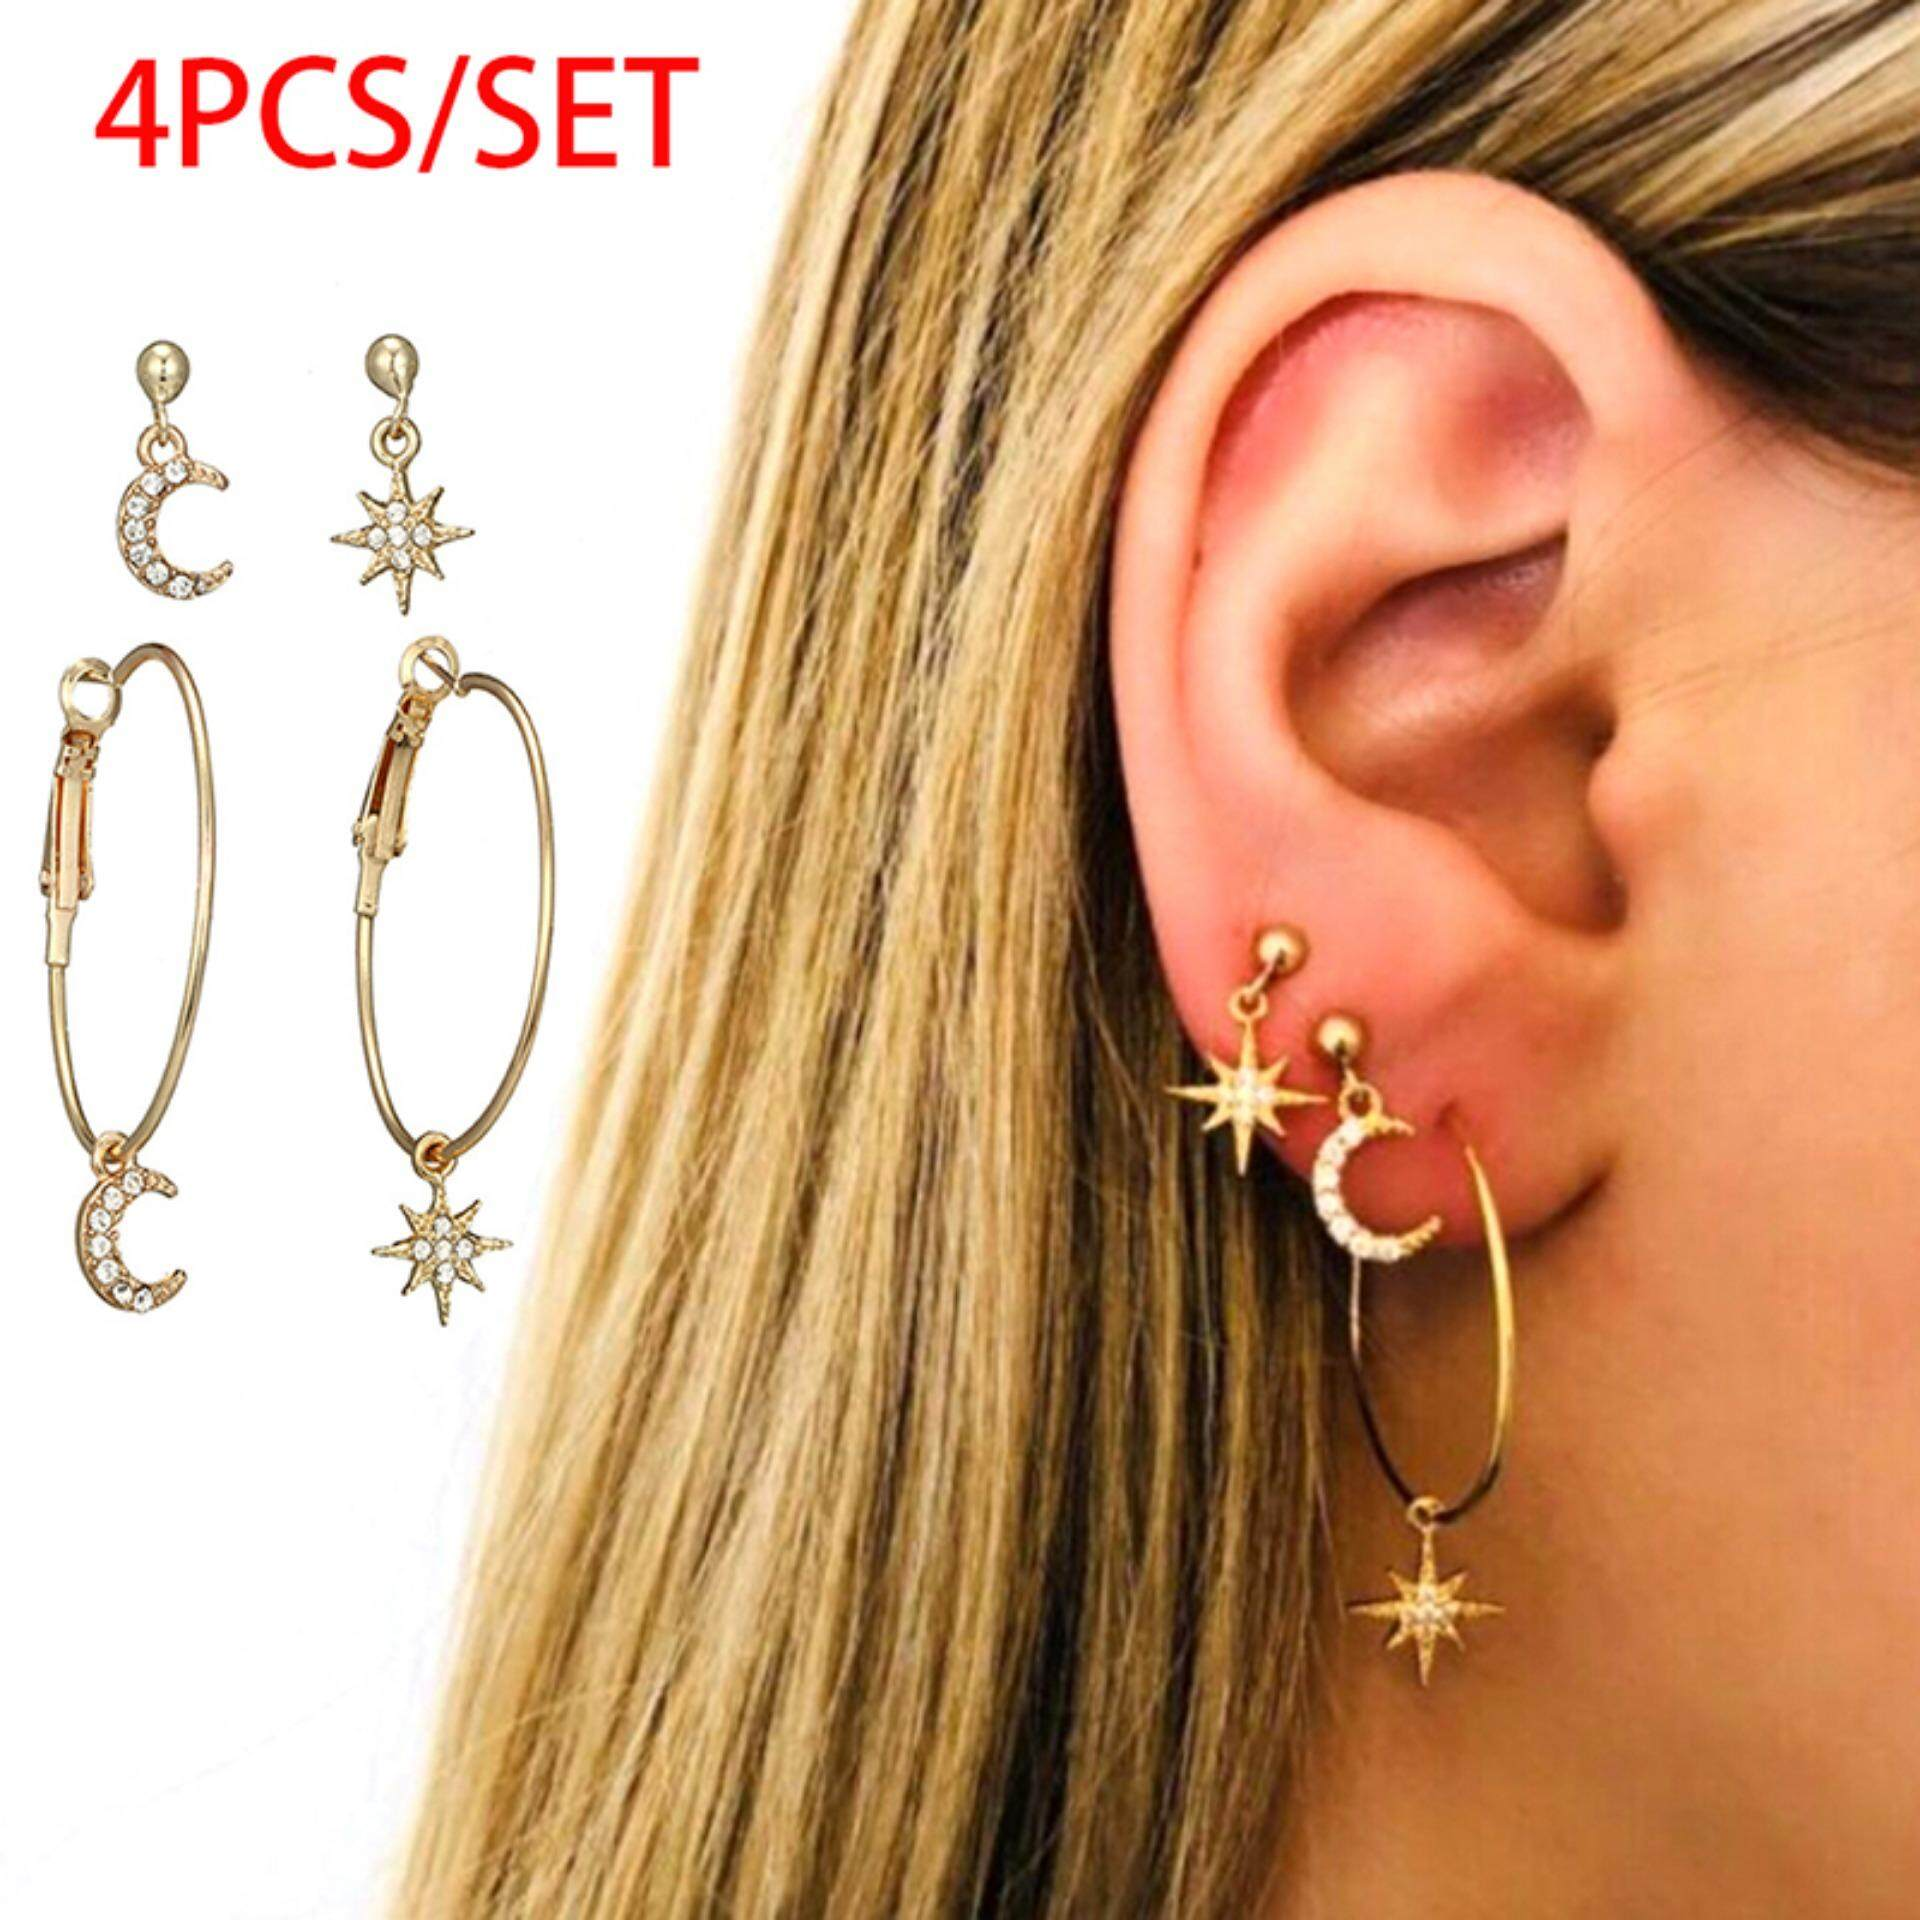 Jettingbuy Bohemian Large Circle Earrings Ear Clip Crystal Moon Star Stud Jewelry